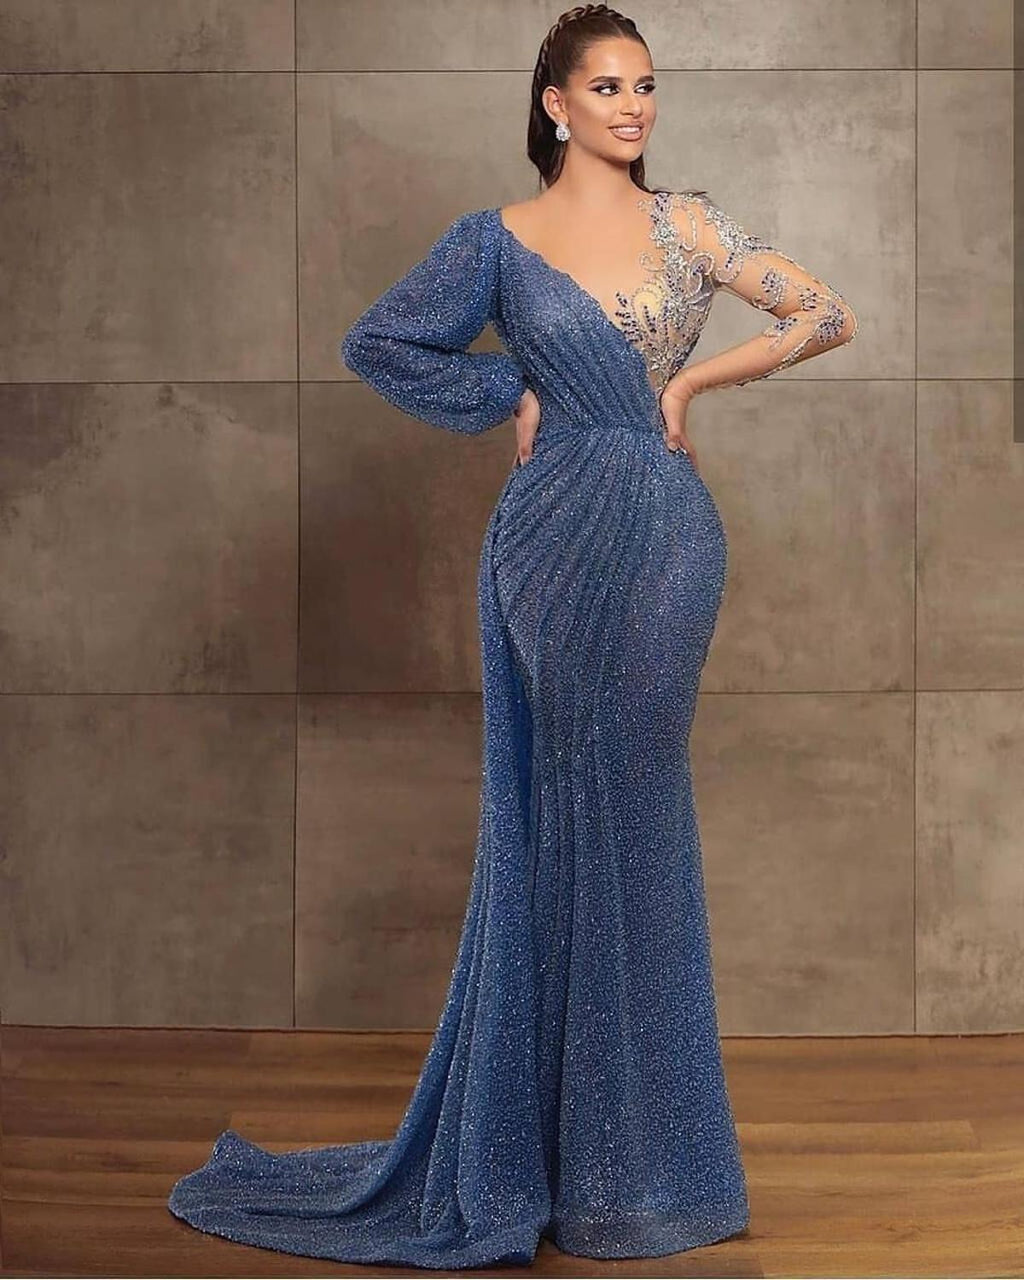 Party special occasion gown robe de soiree vestidos formales elegant bling bling beads evening dresses blue gown for parties